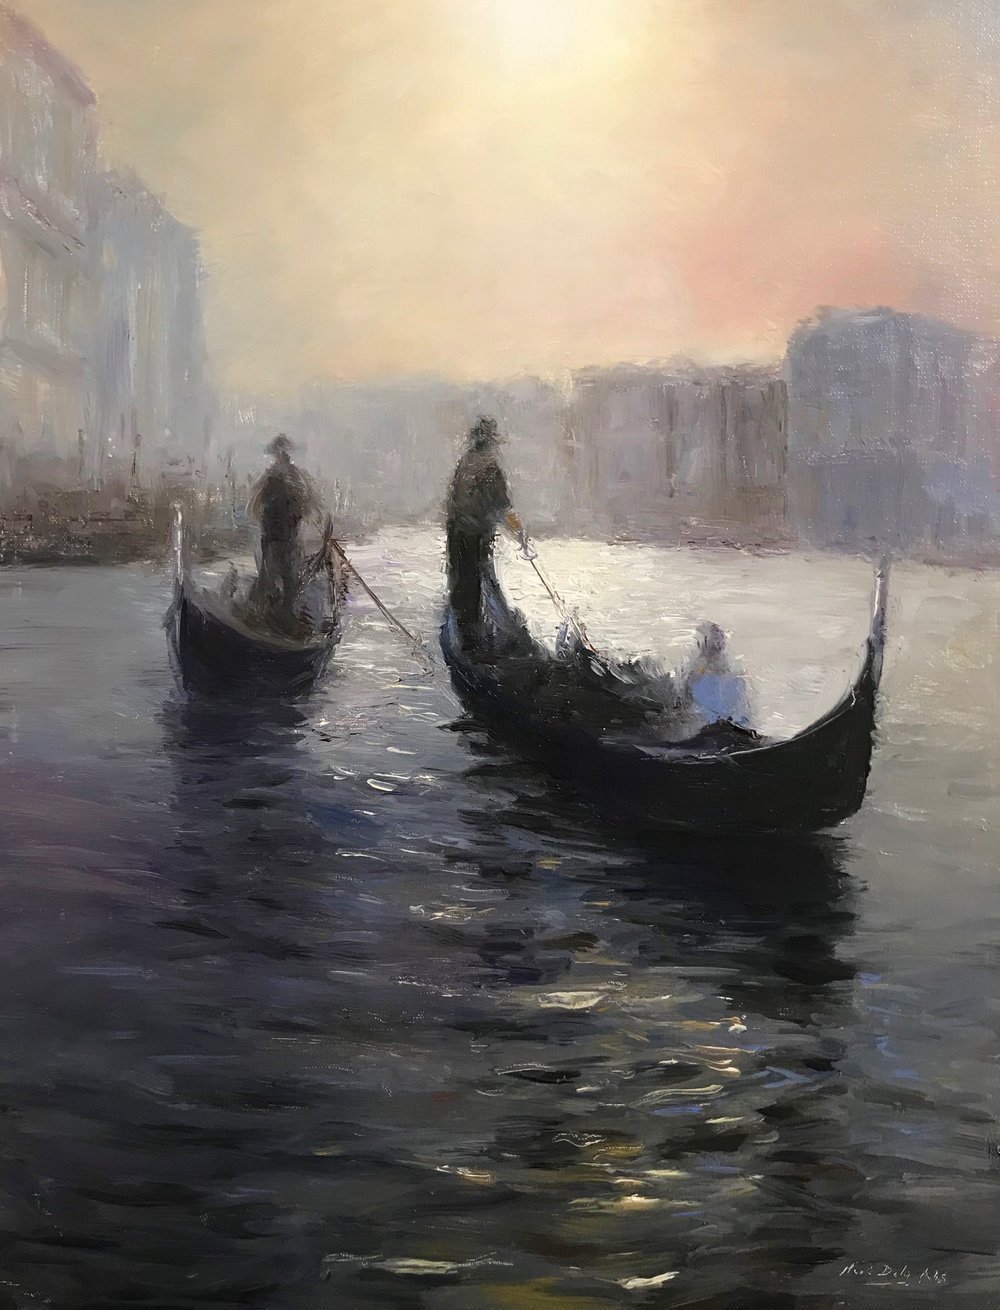 Impressions, Venice Sunset, oil, 16 x 12. Signed lower right by Mark Daly. Available at Rehs Galleries.